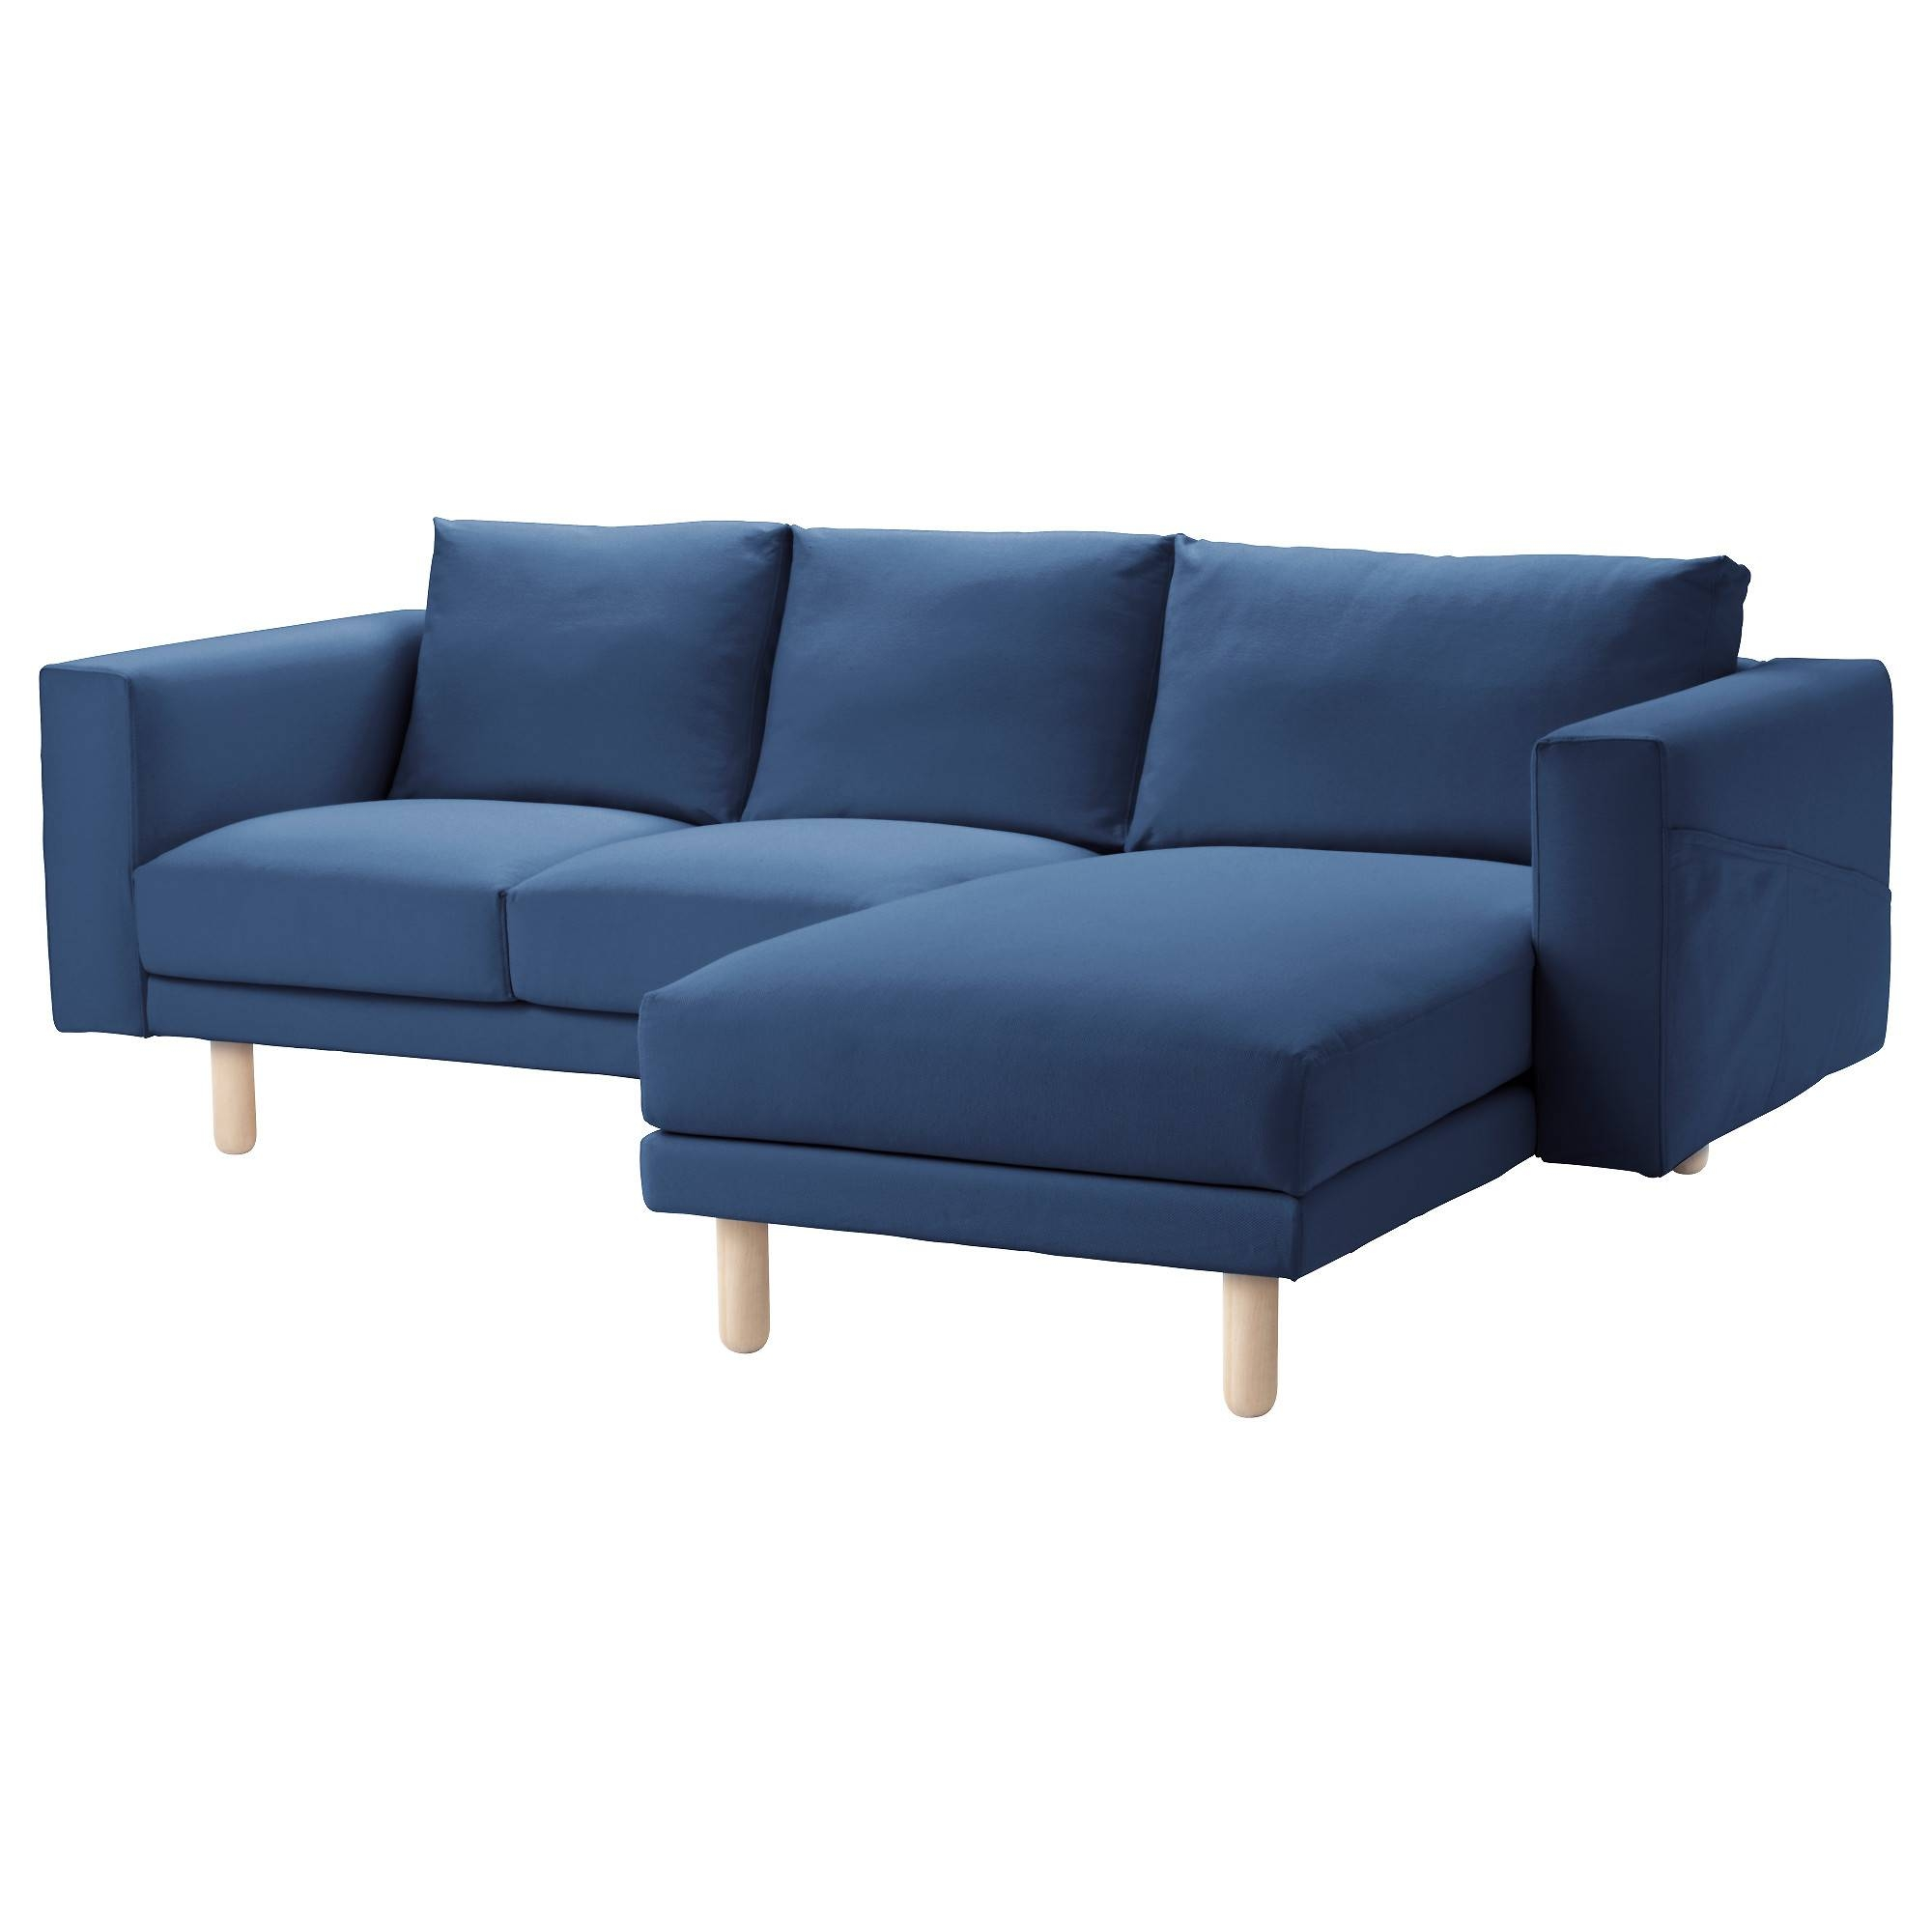 Seats And Sofas Youtube Best 30 43 Of Sofas With Chaise Longue